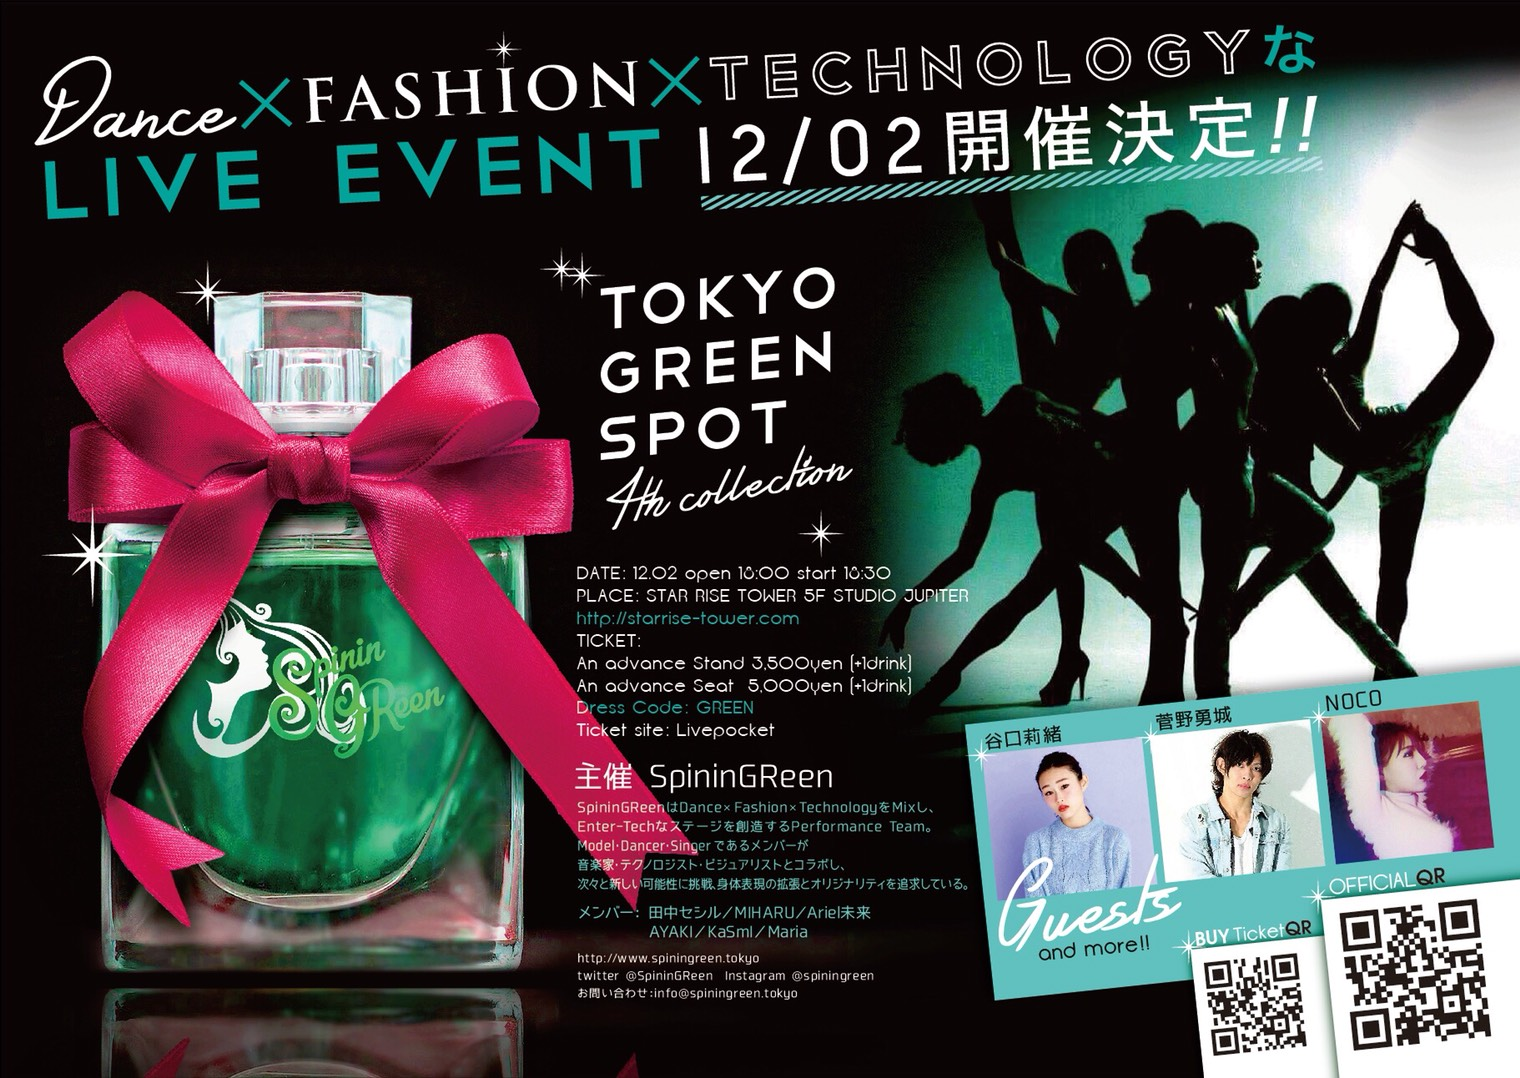 TOKYO GREEN SPOT〜4th collection〜